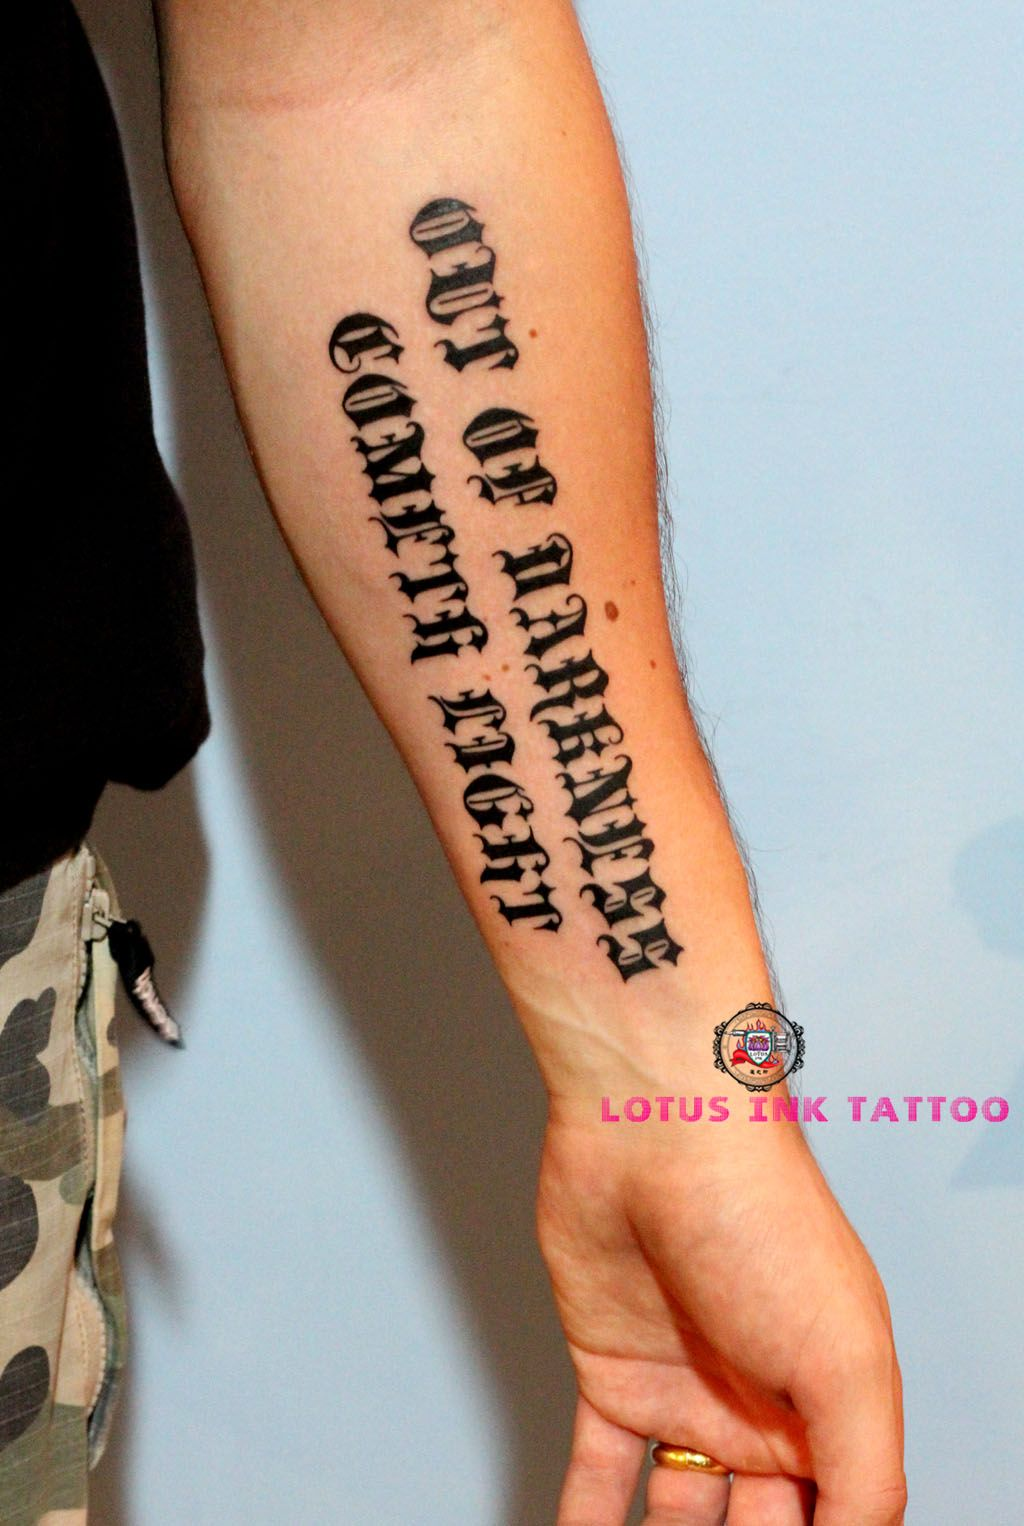 My Favourite Quote Out Of Darkness Cometh Light Tattoo Wolves